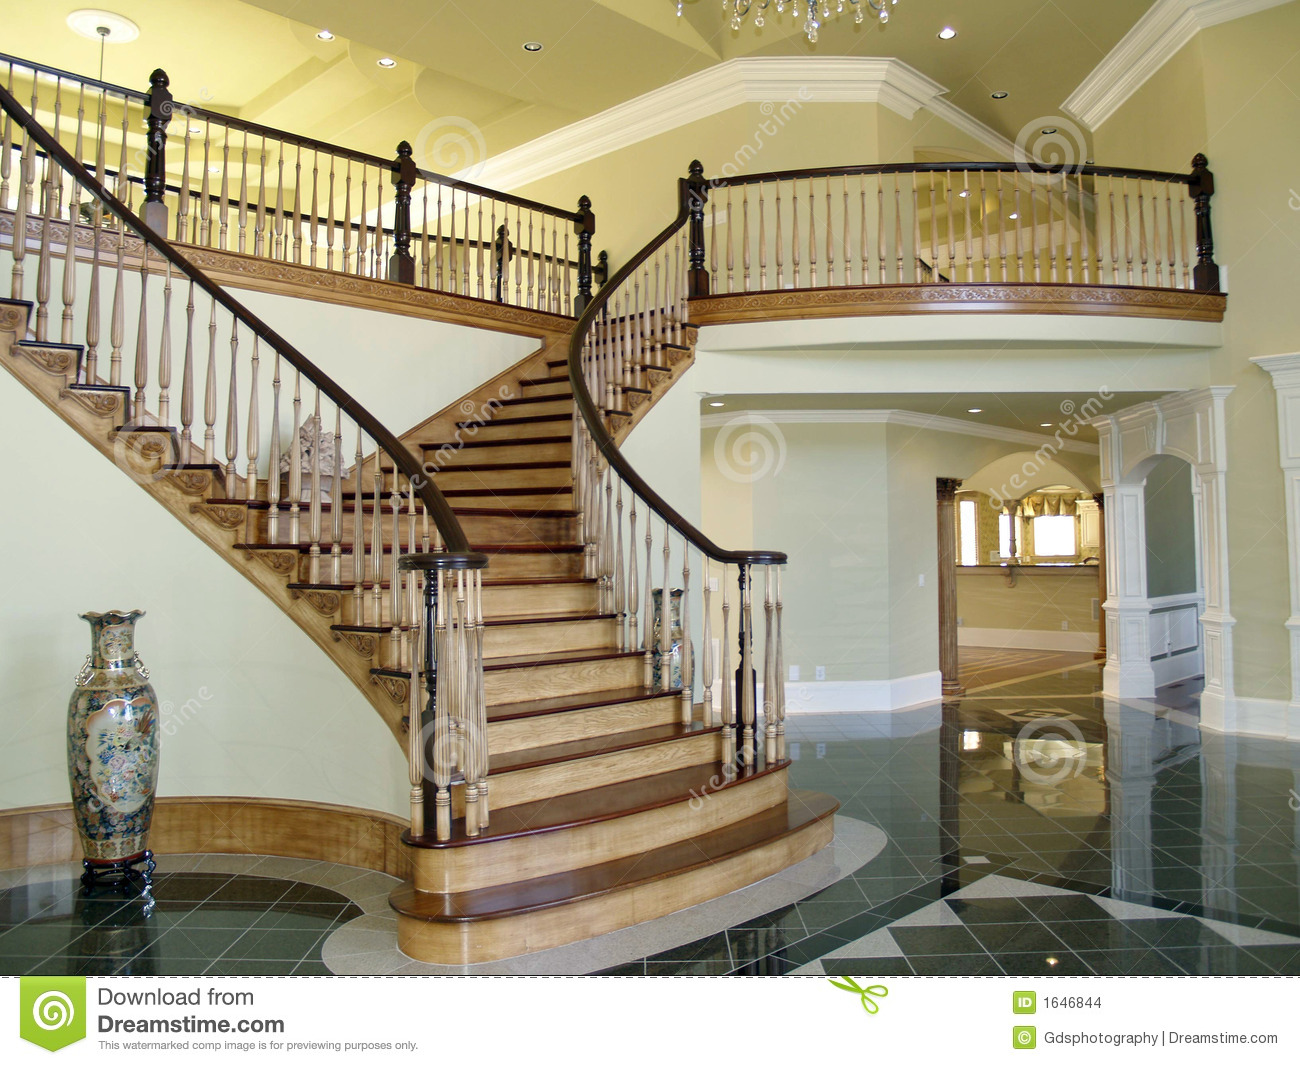 Stair case foyer stock images image 1646844 for House plans with stairs in foyer